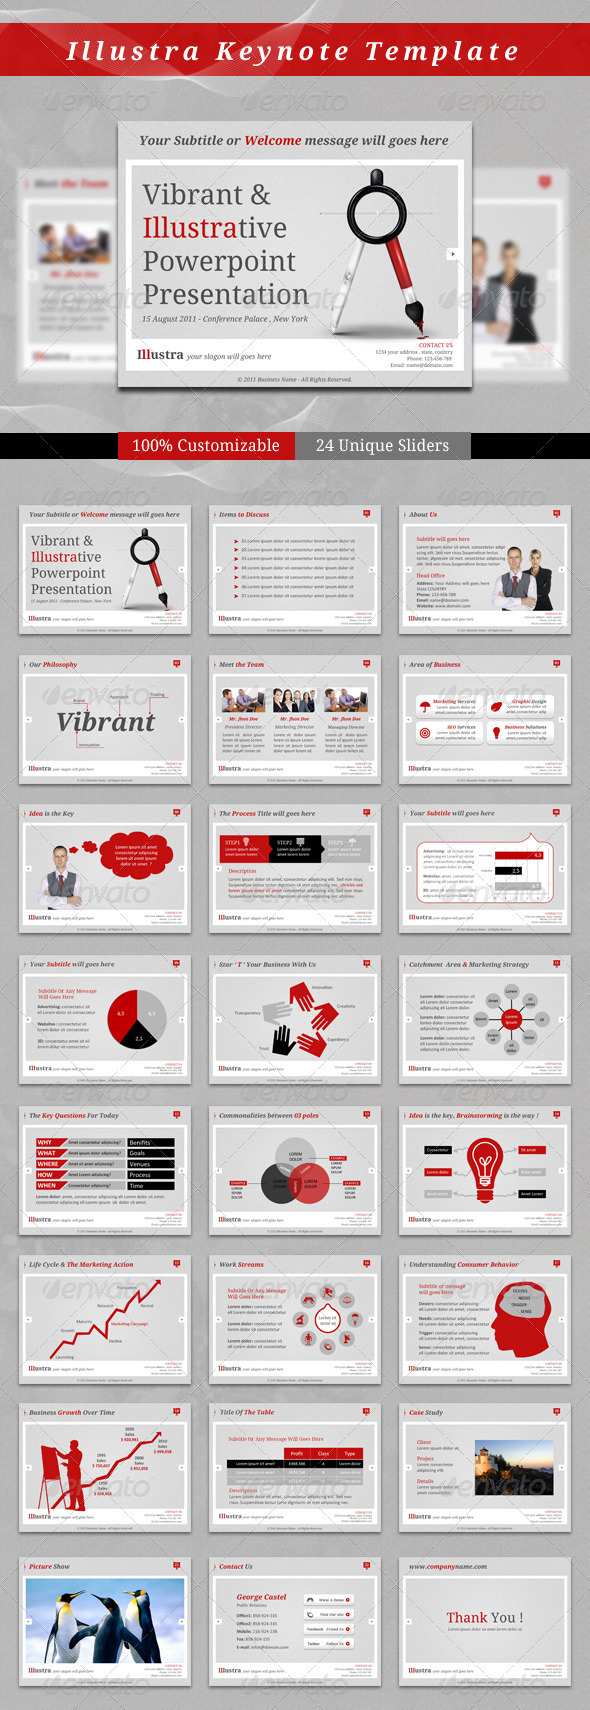 Illustra Keynote Template - Business Keynote Templates